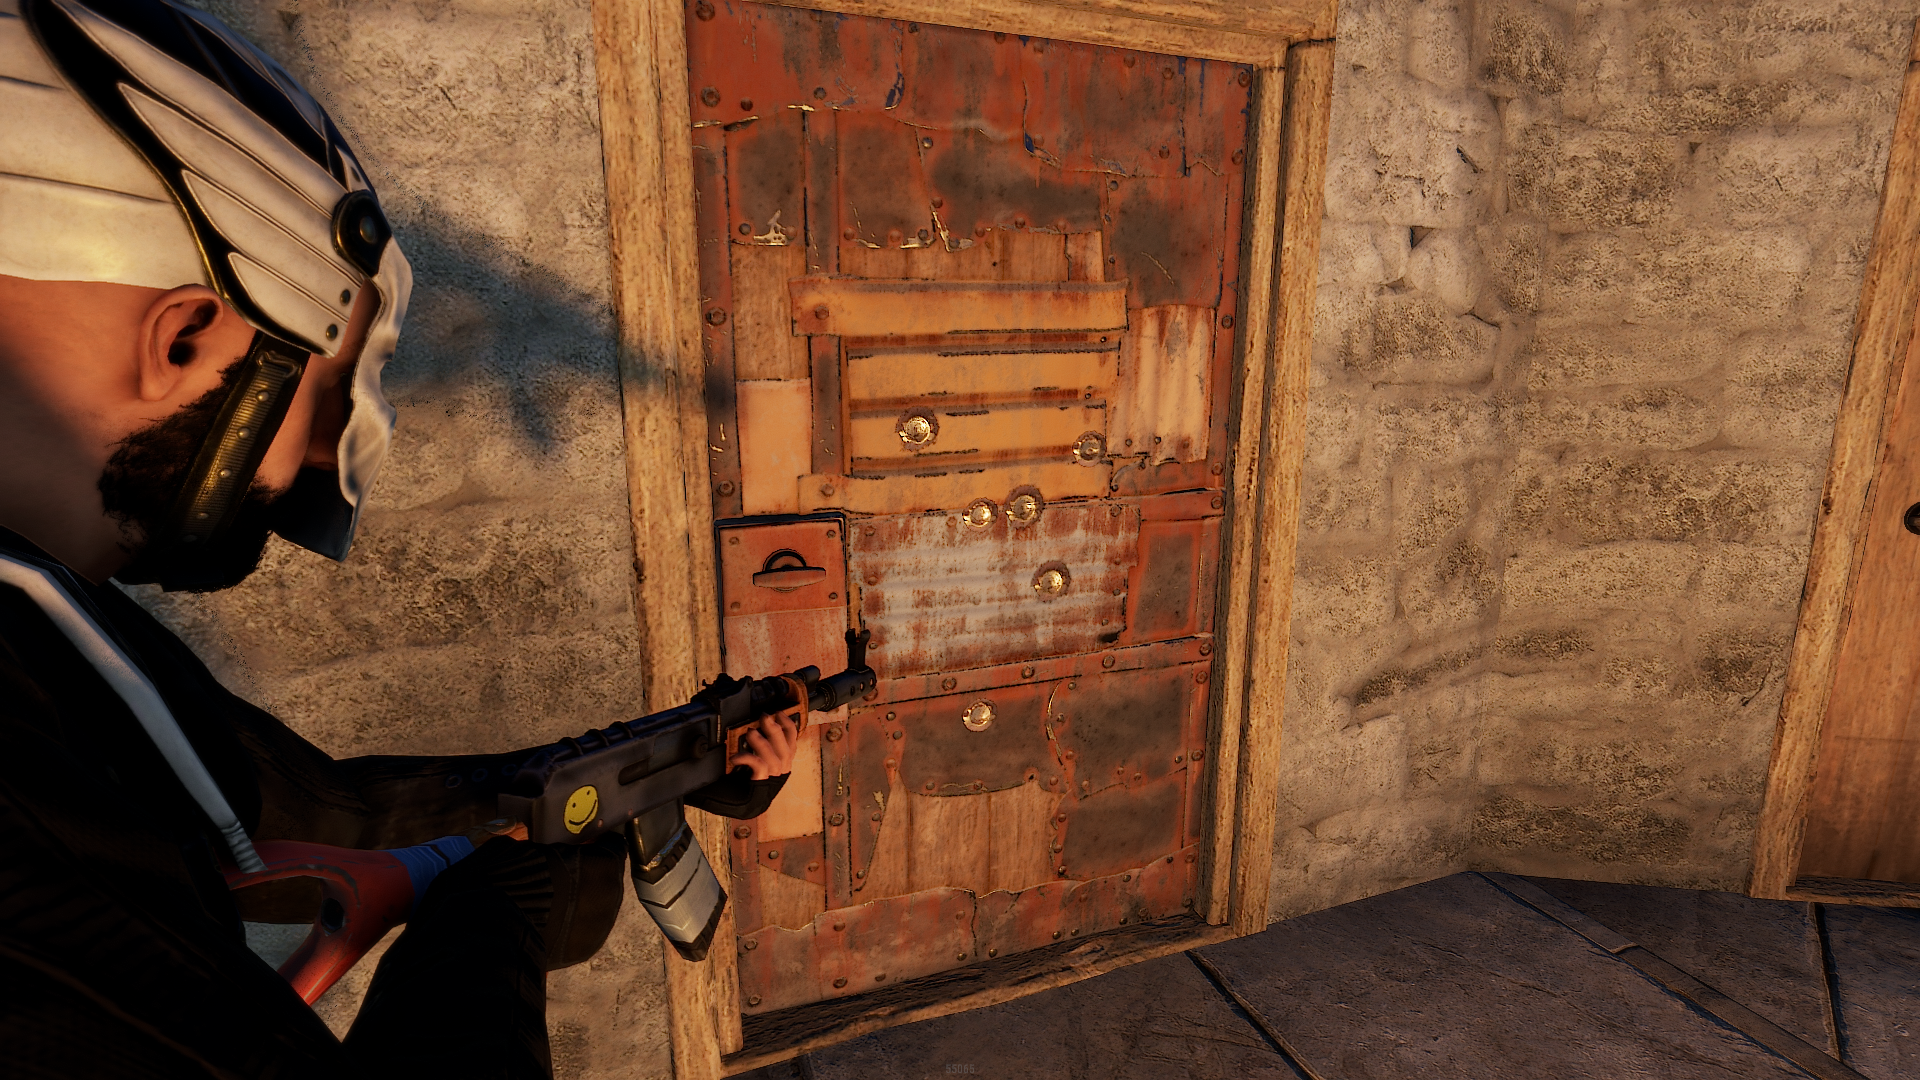 How To Remove Doors In Rust How To Guides